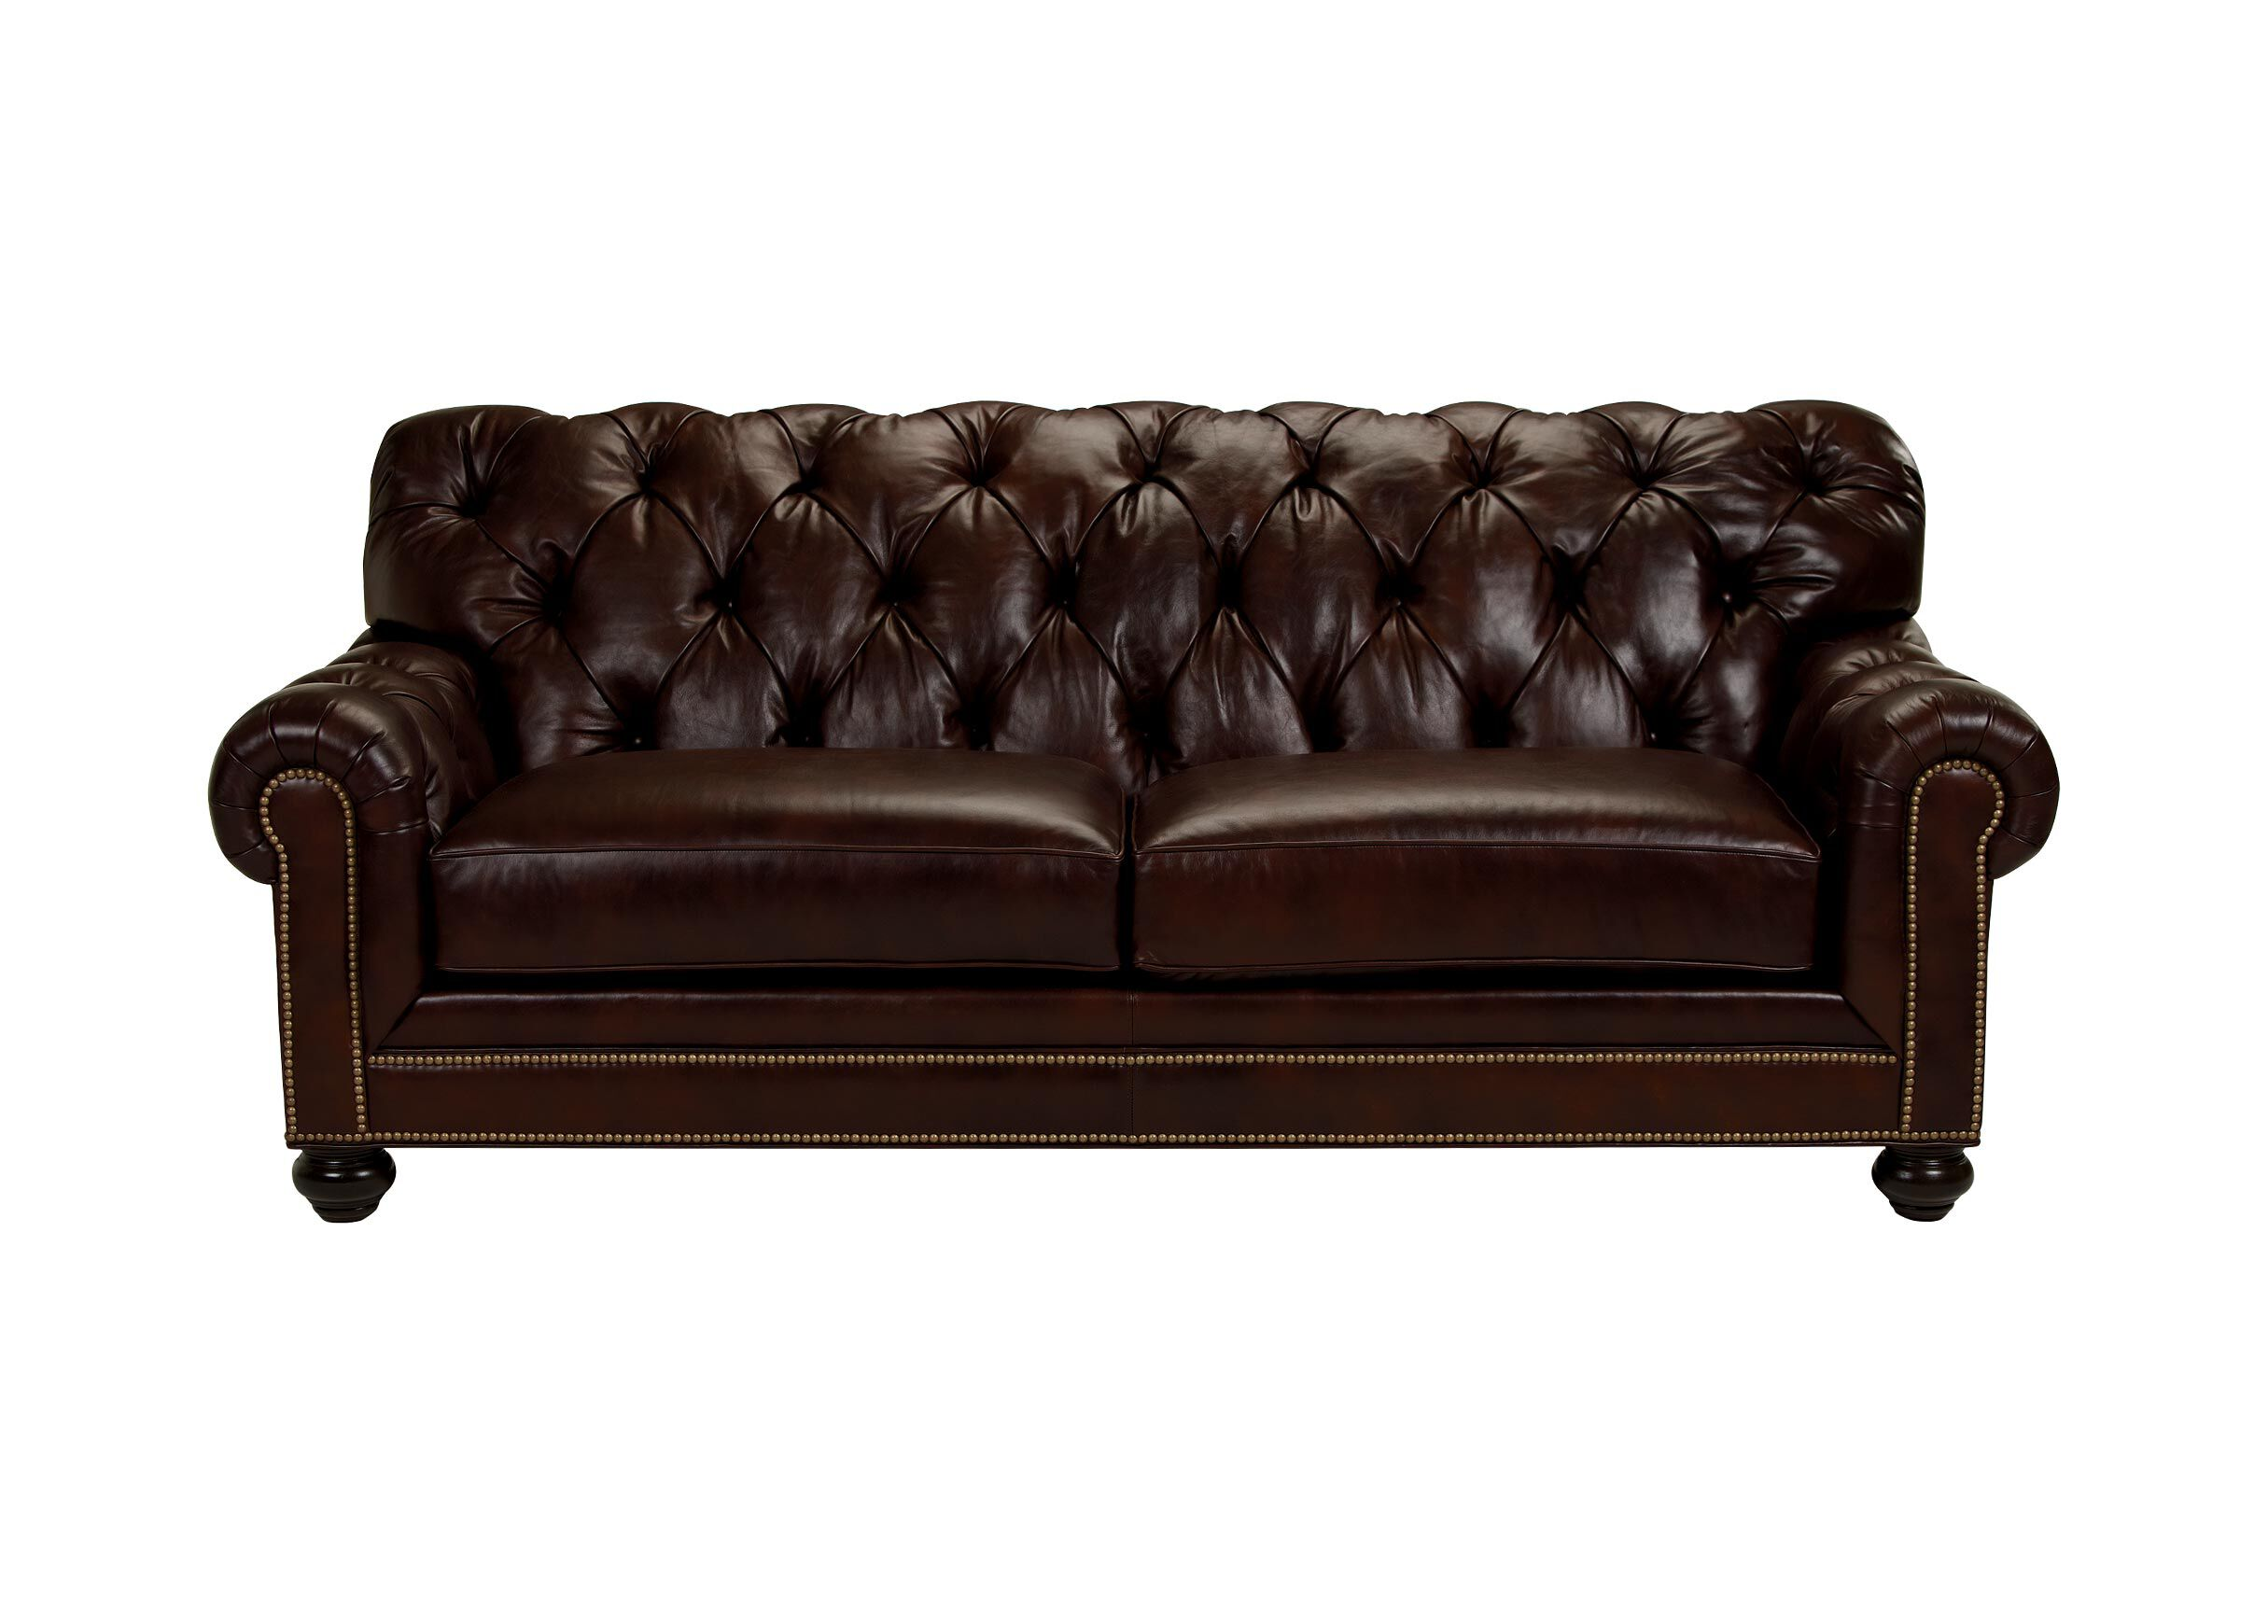 chadwick sofa ethan allen reviews milo baughman rosewood best of leather sofas amp loveseats